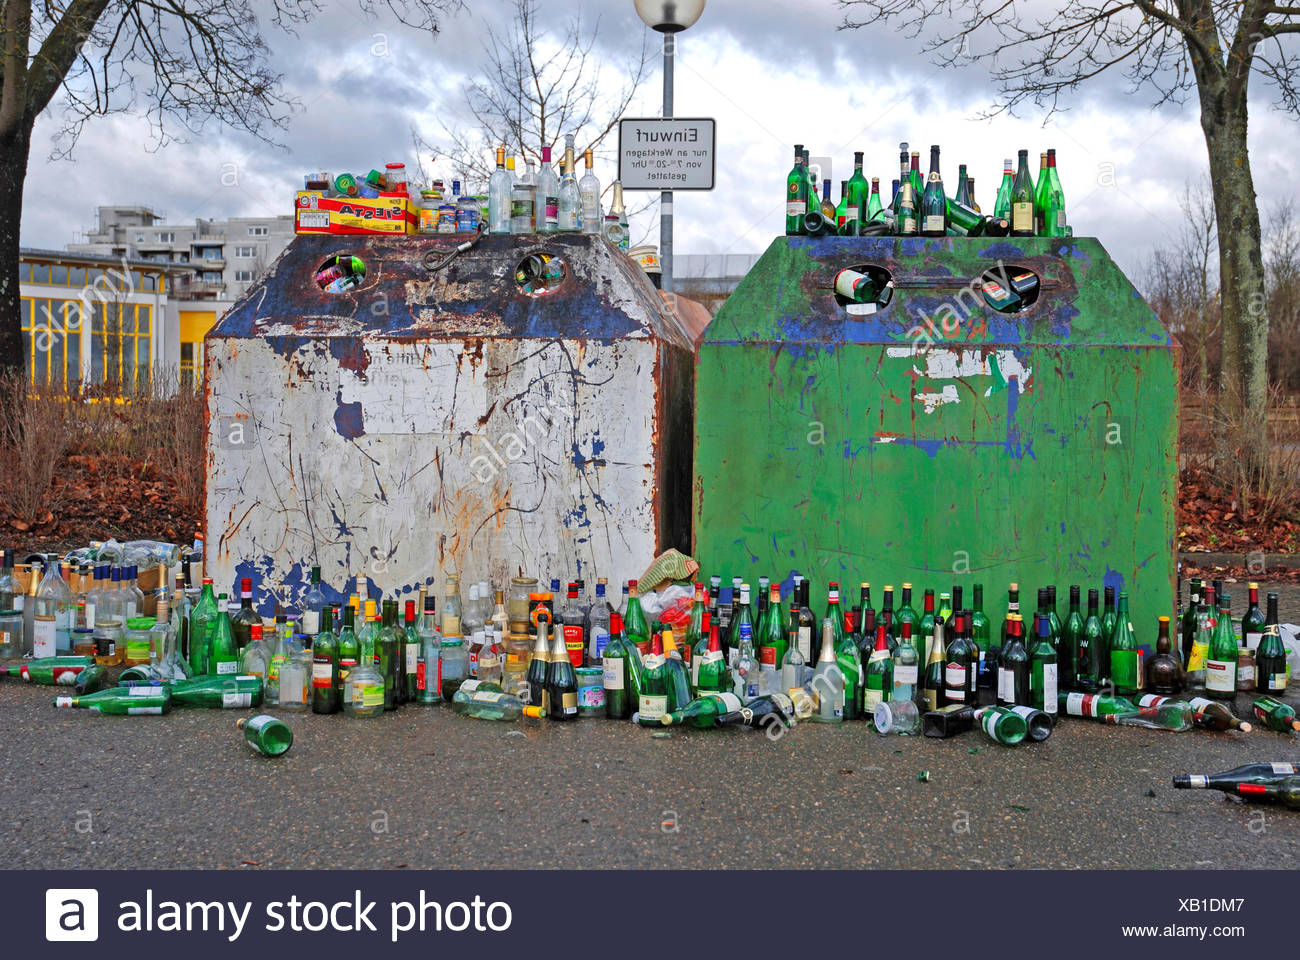 empty bottles around a abuzzed bottle bank, Germany Stock Photo